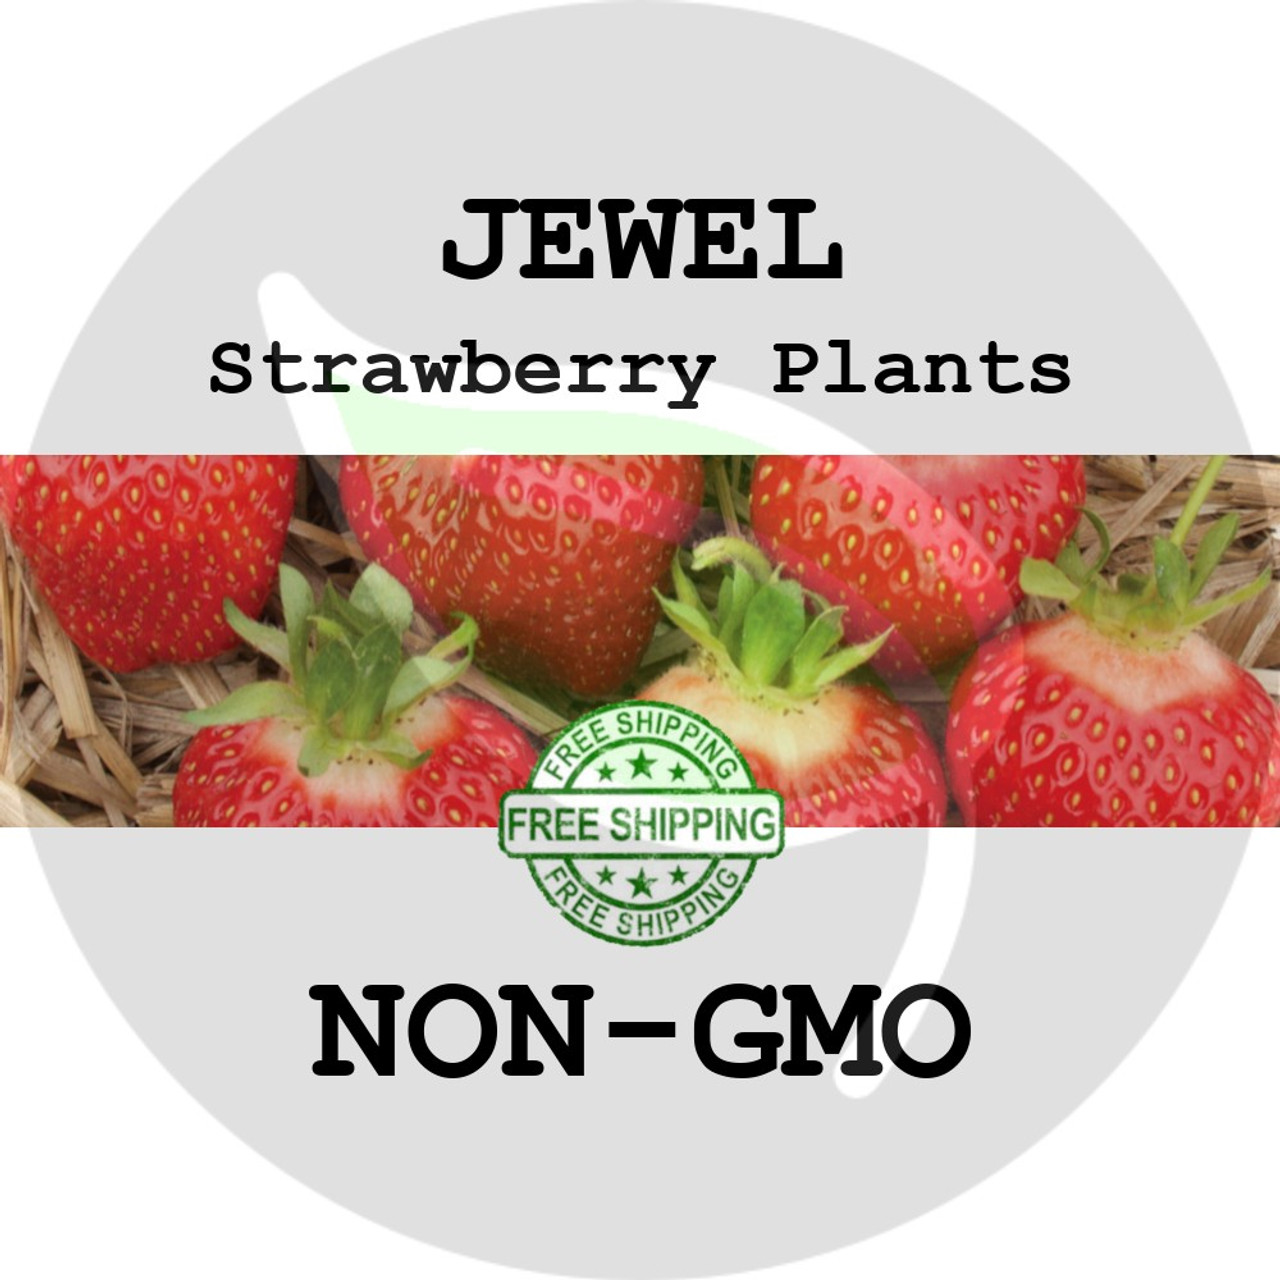 Jewel Strawberry Plants Pack of 30 Bare Roots Excellent for Home Gardeners - #1 Midseason Variety Best in Zones: 4-8.